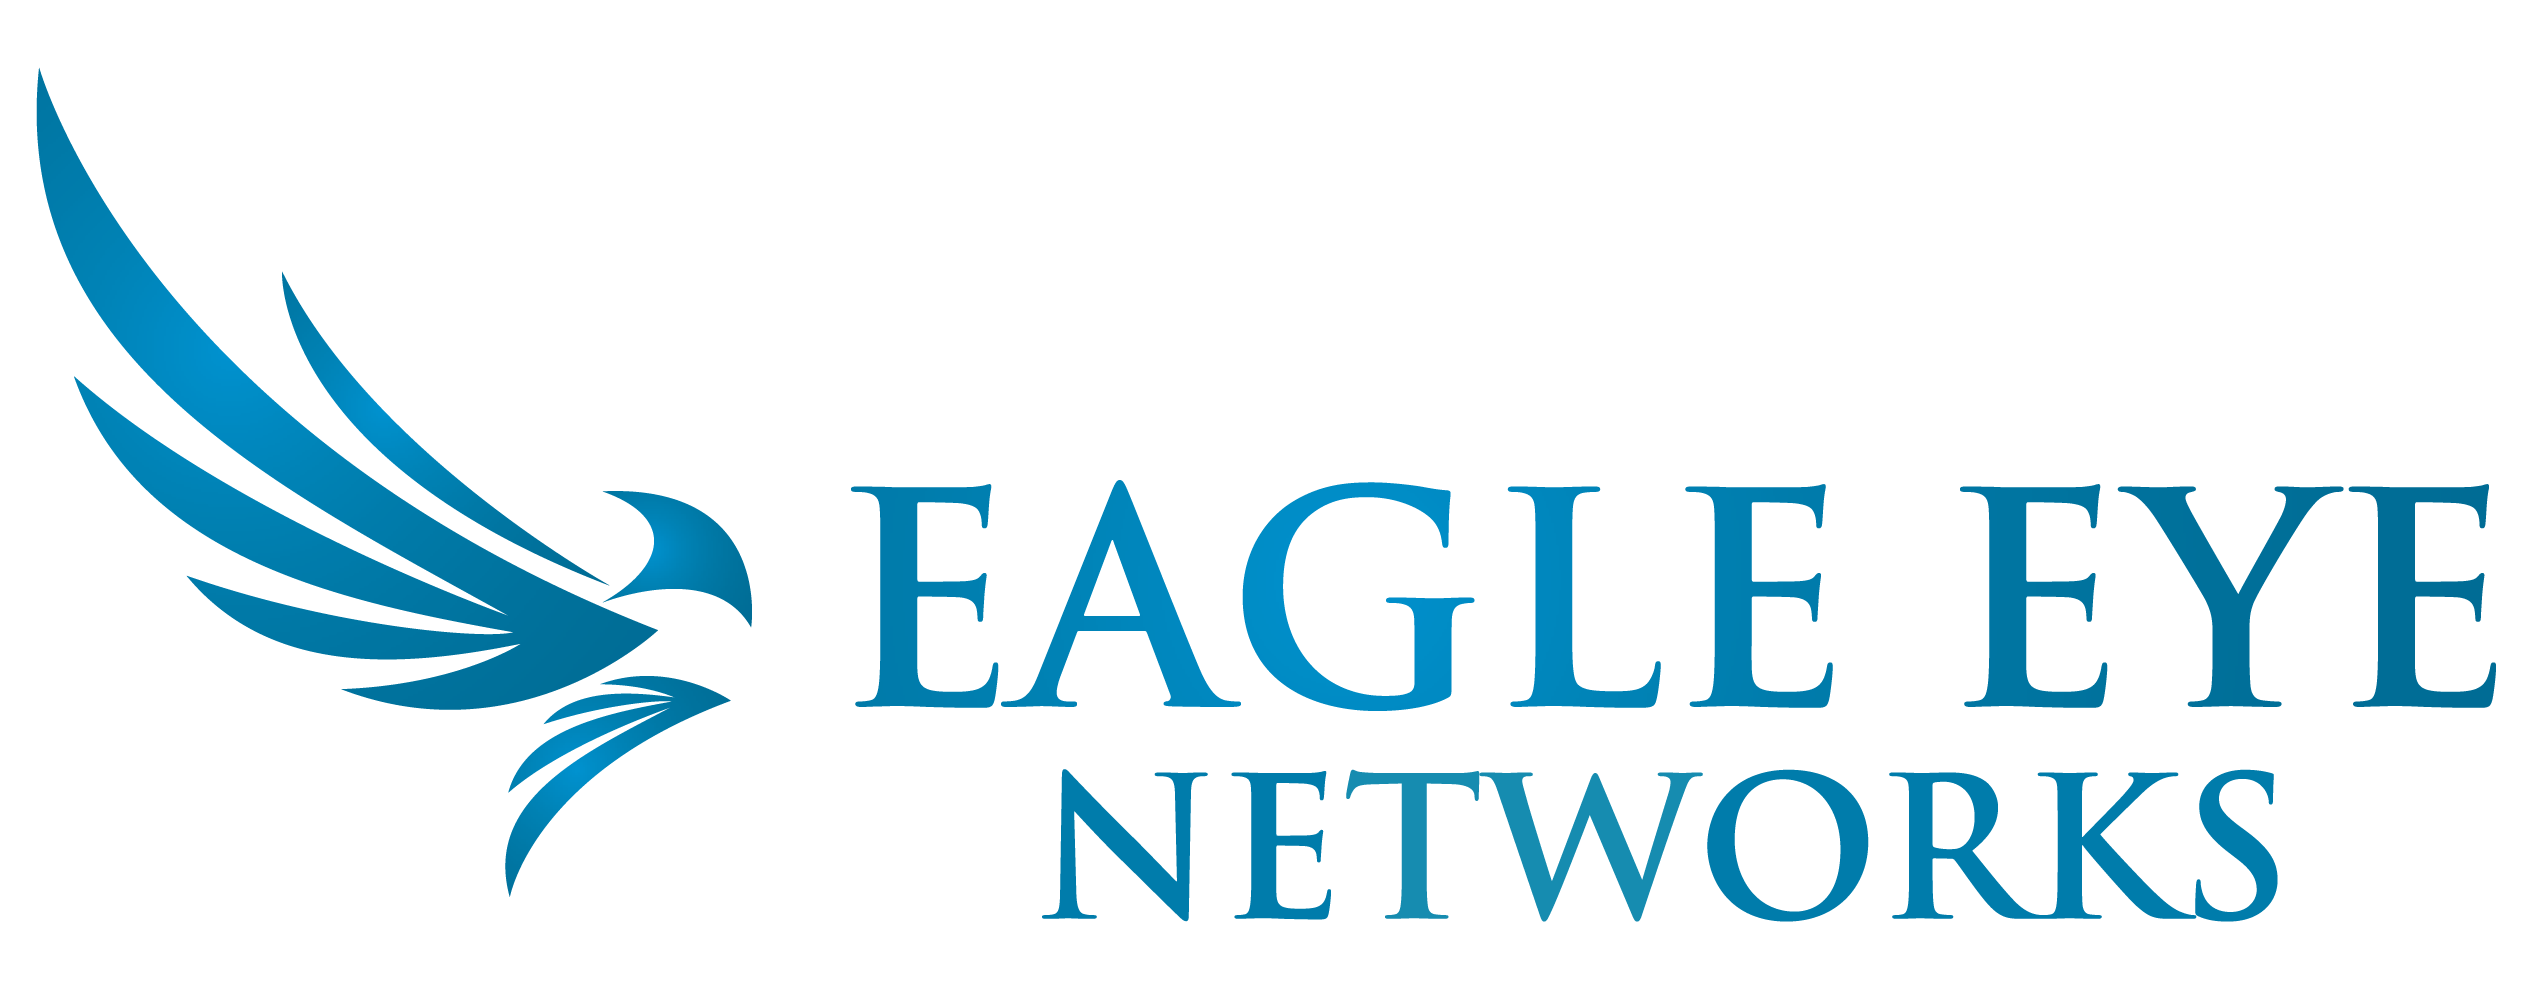 EagleEyeNetworks